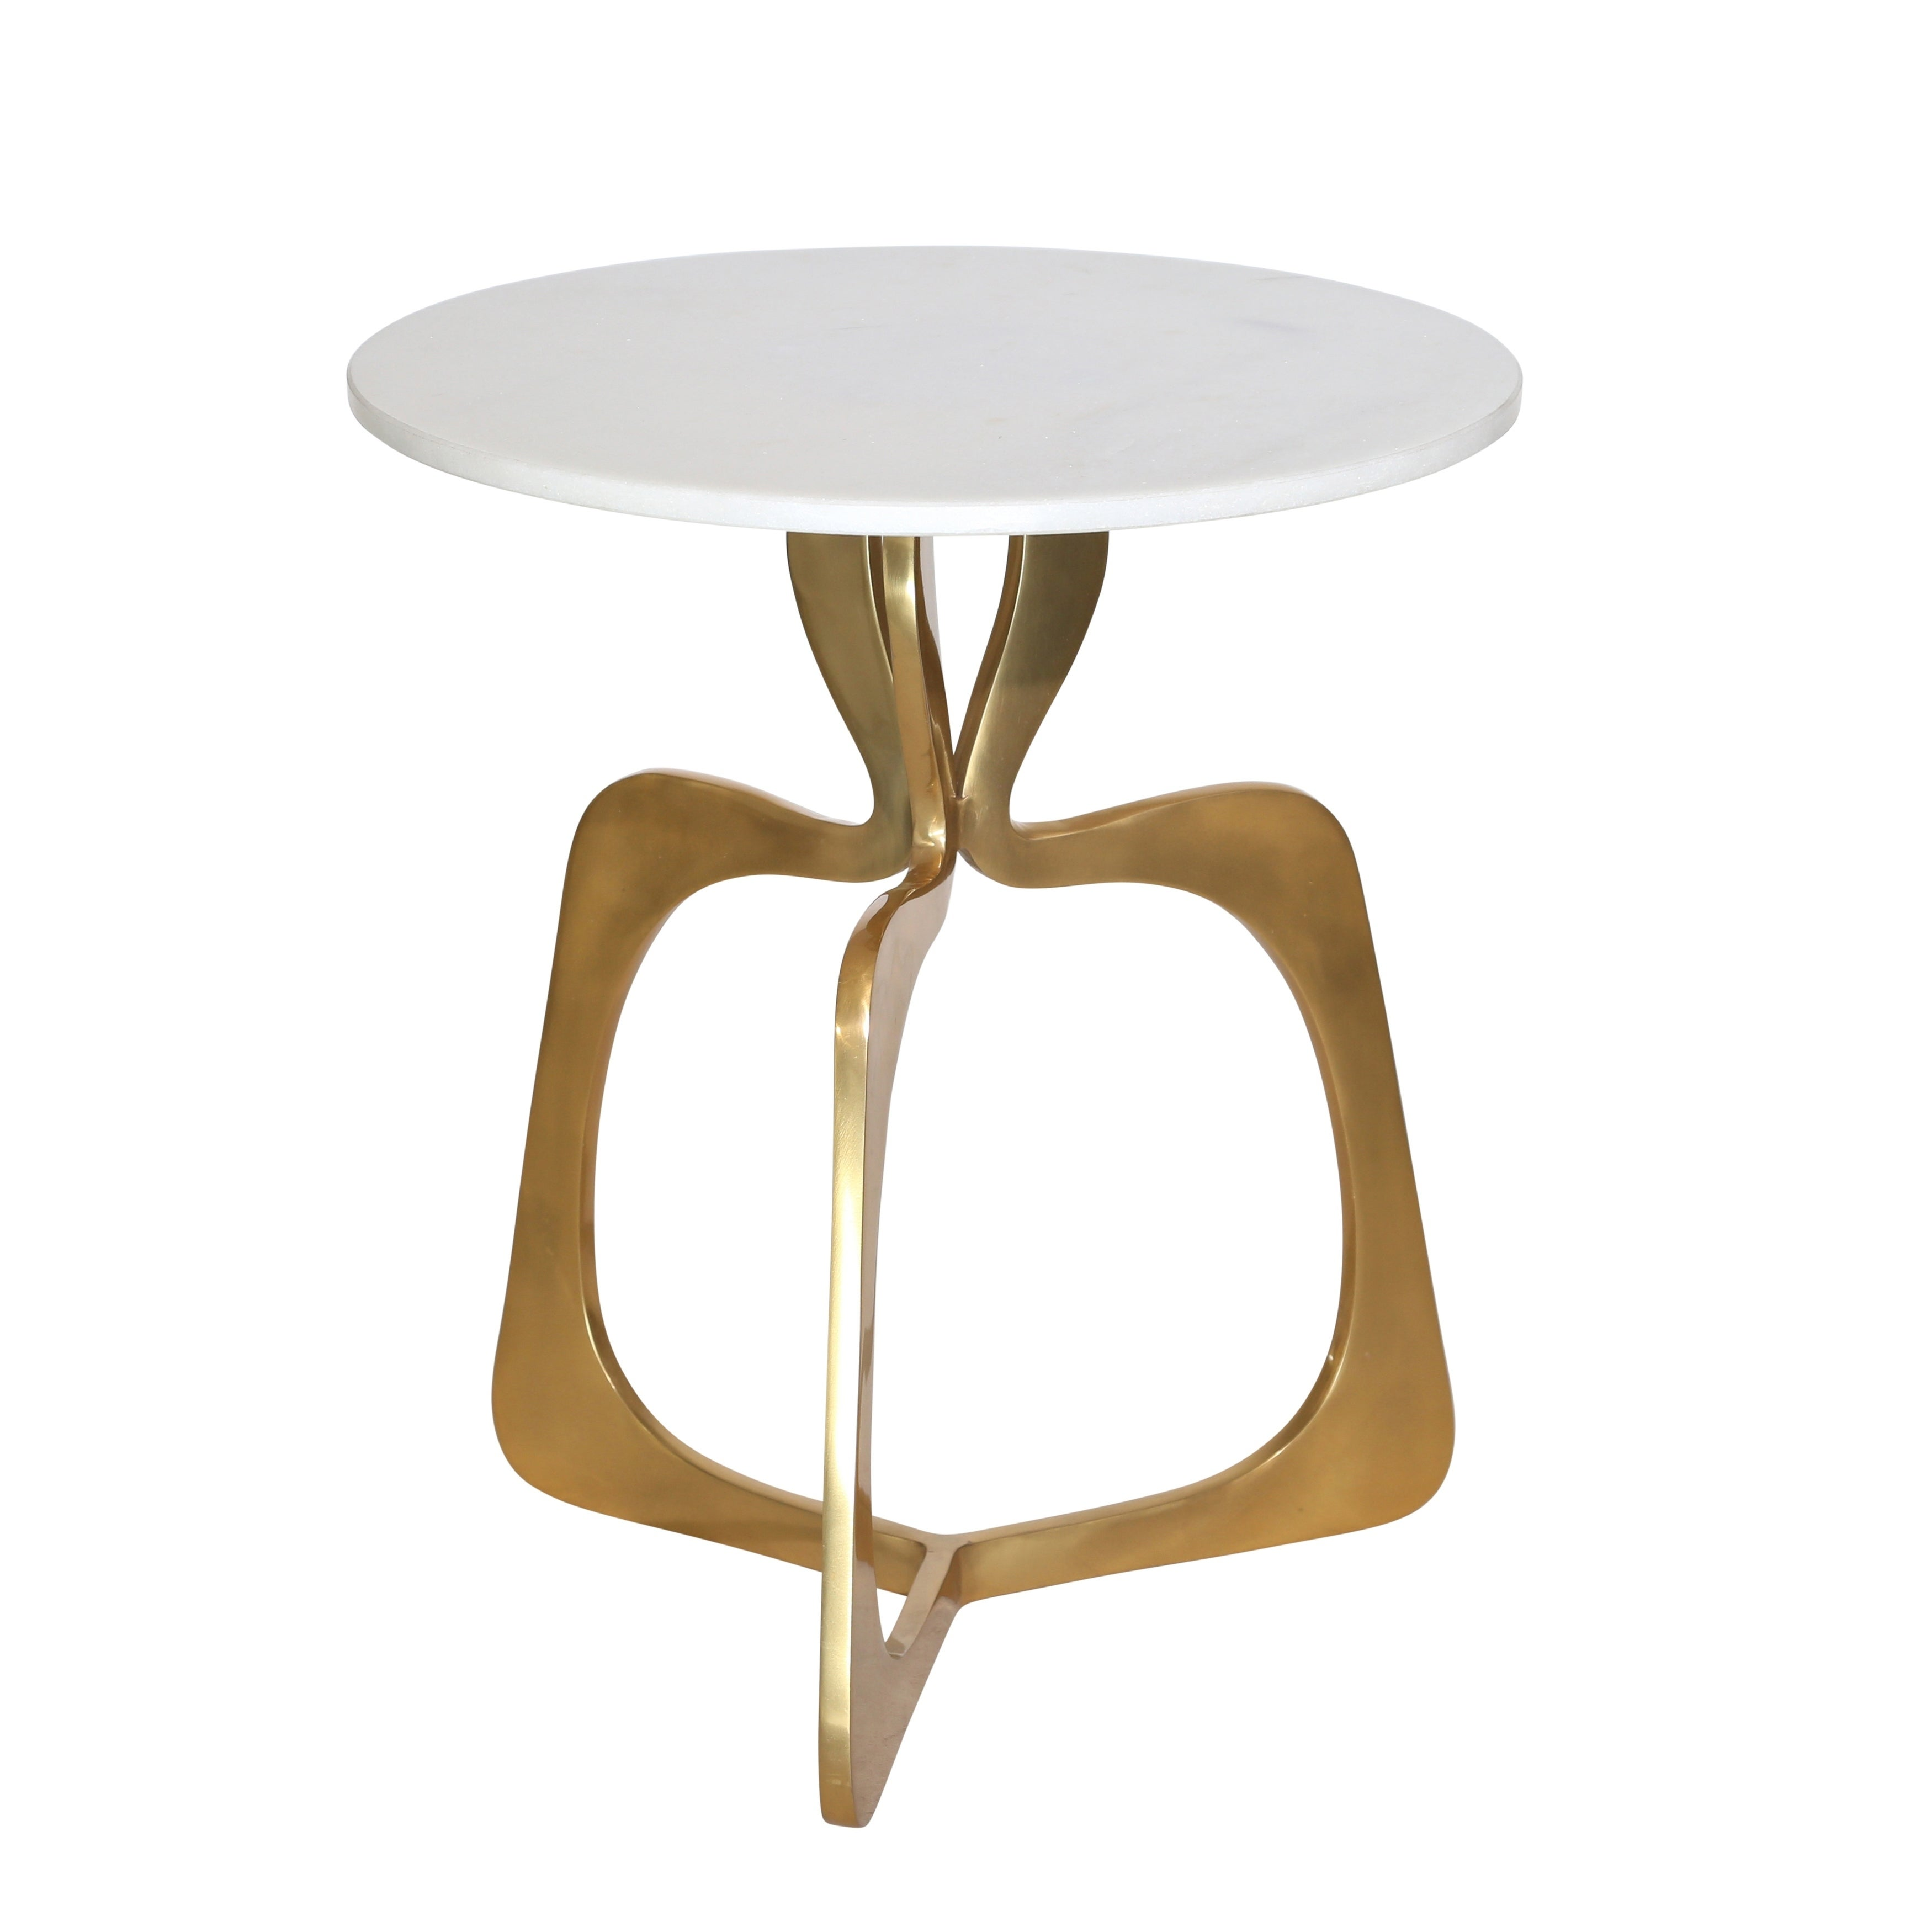 - Shop Round Metal Accent Table With Designer Open Base, White And Golden -  Overstock - 30609013